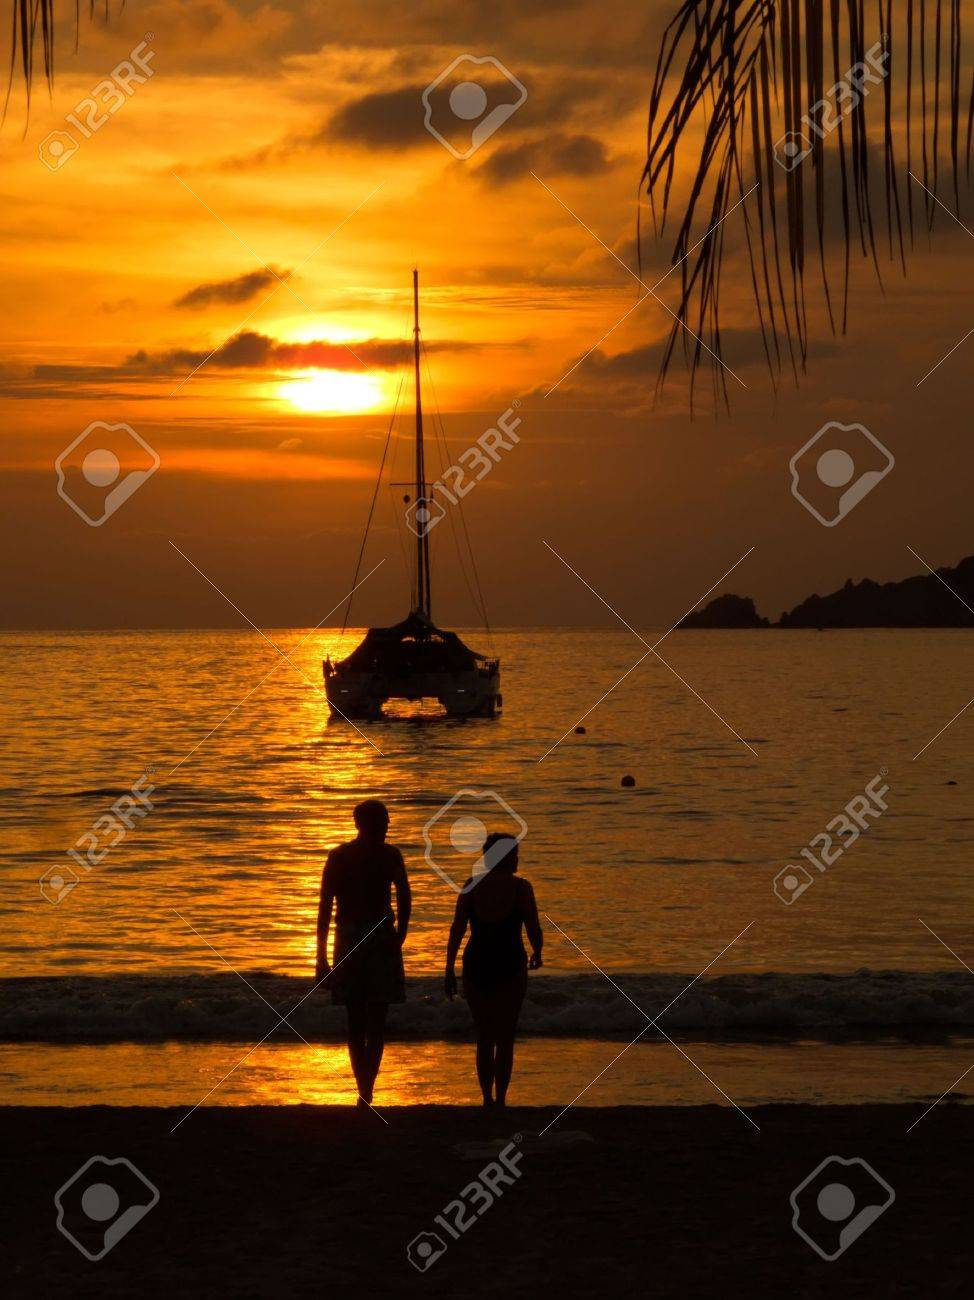 Sunset with sailboat and couple sihouetted in Zihuatanejo, Mexico Stock Photo - 4220528